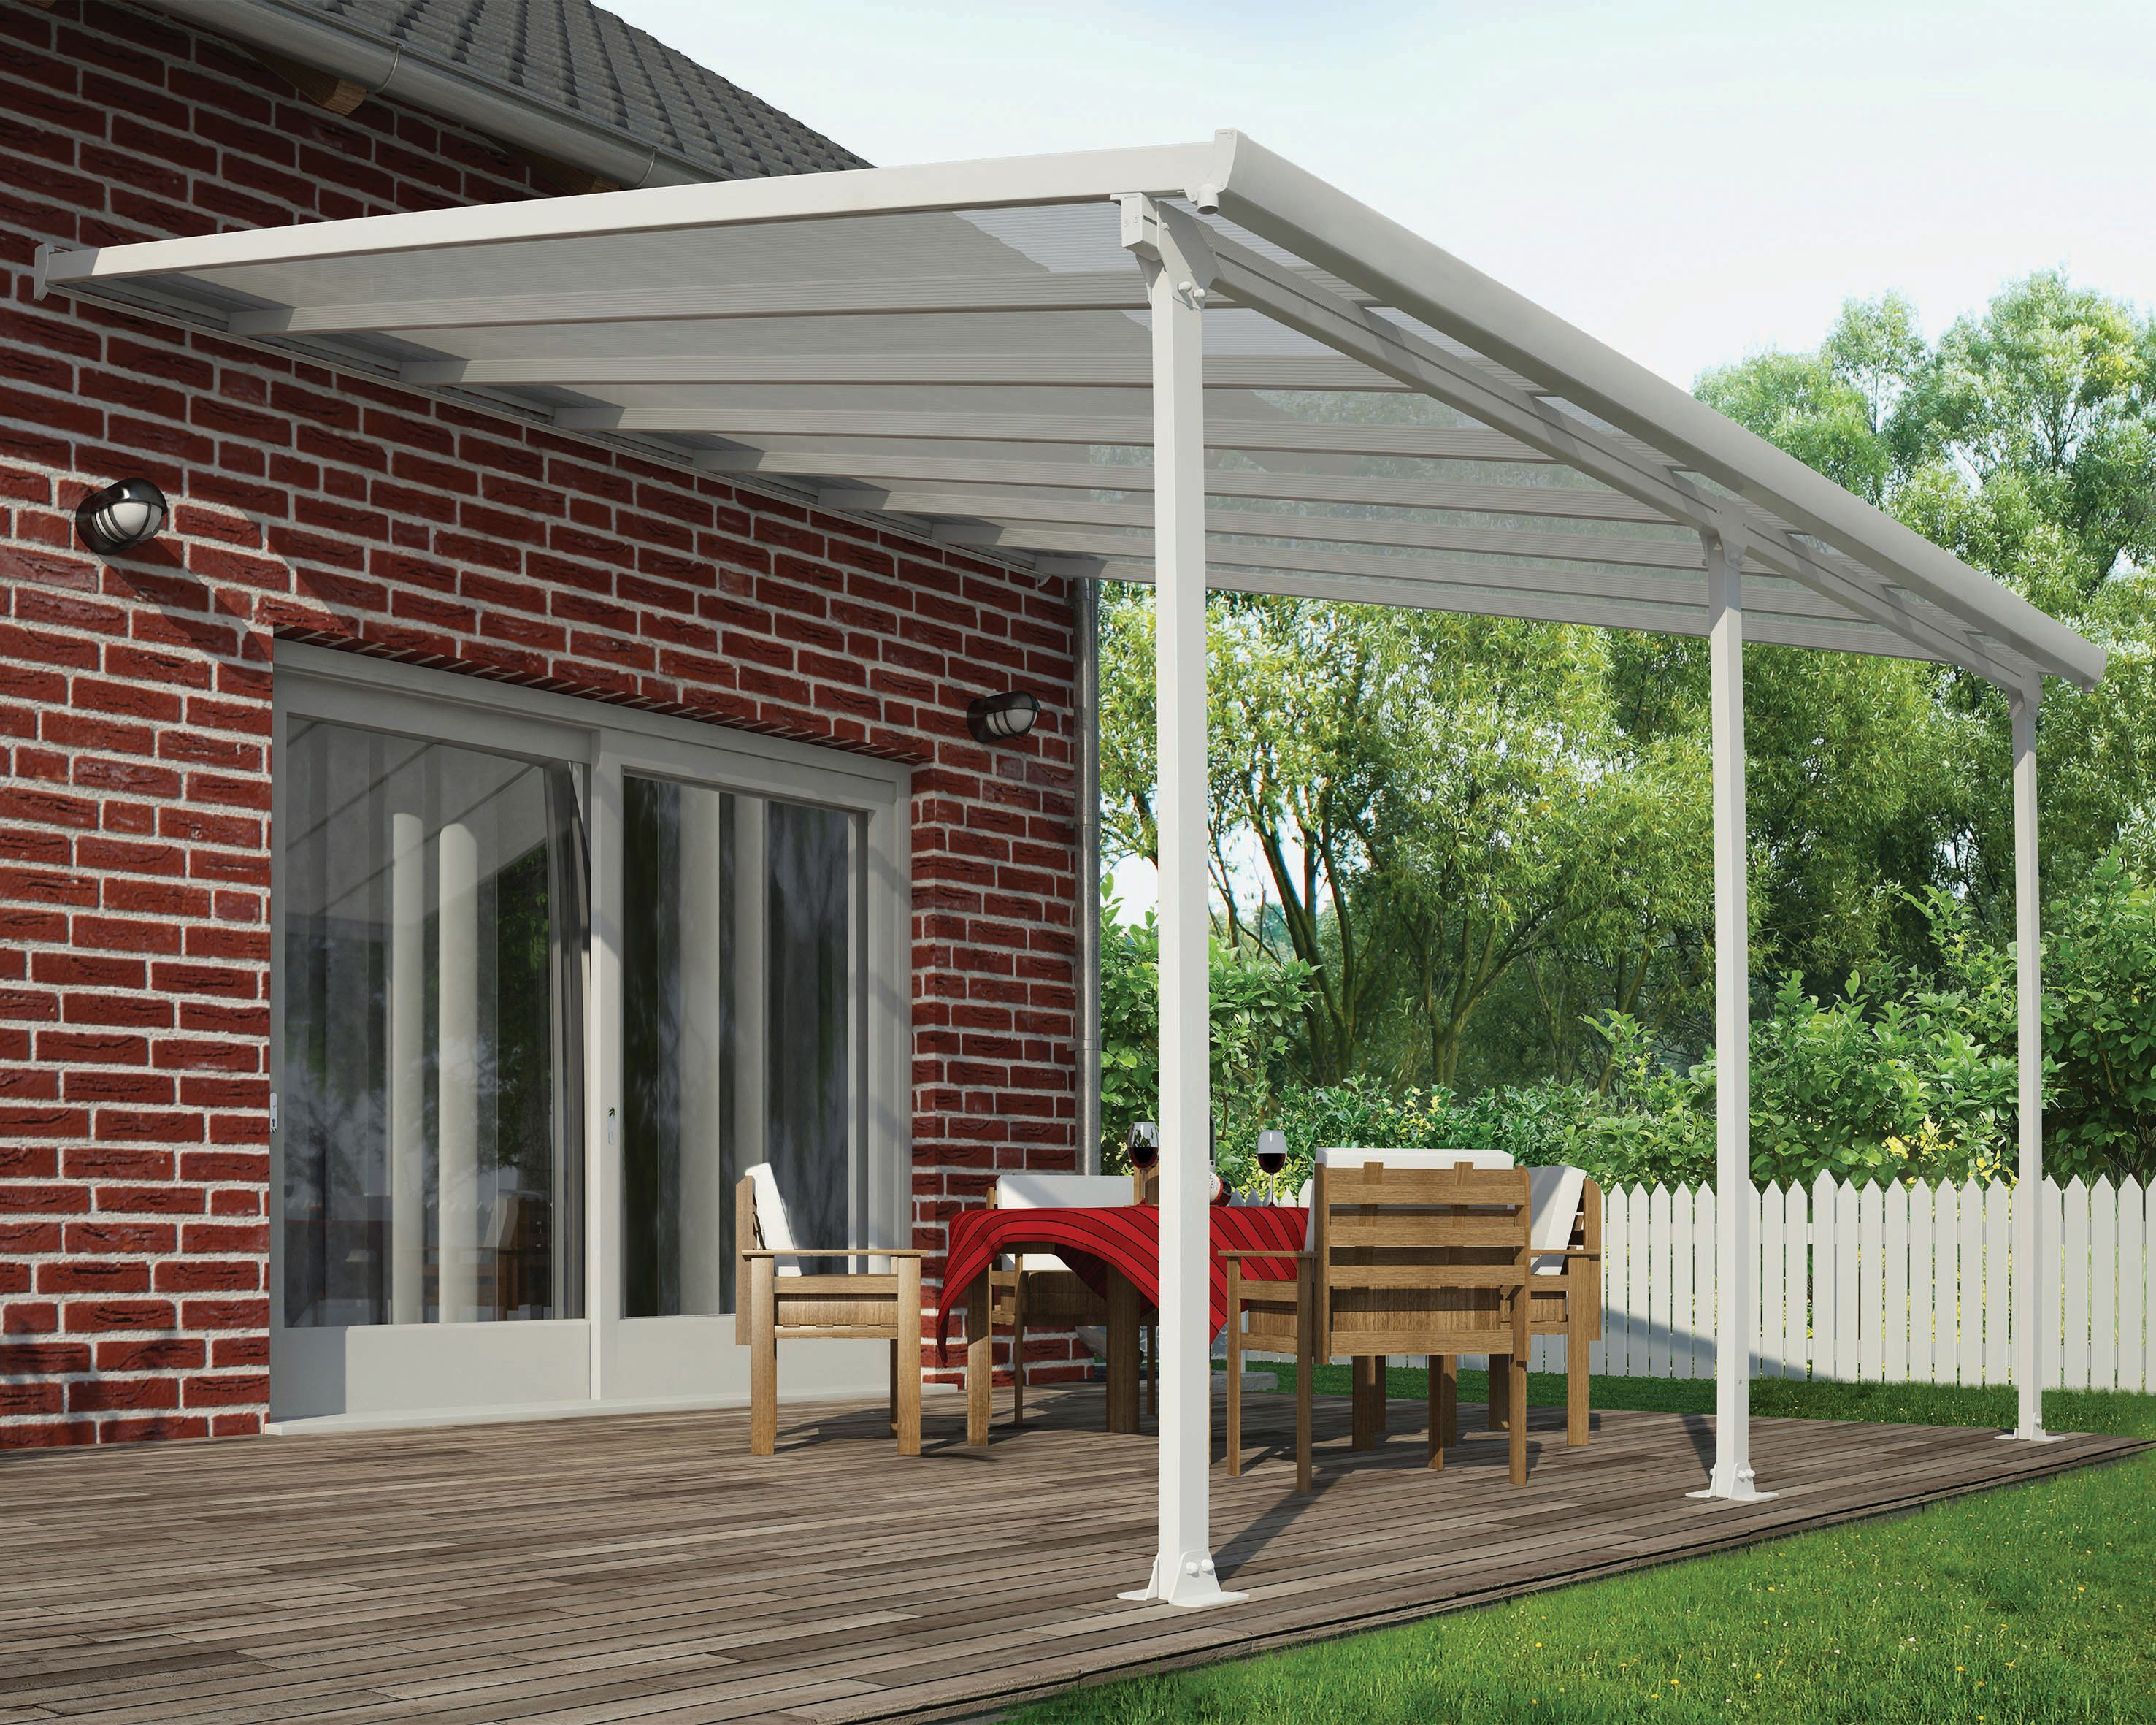 Palram Feria Polycarbonate Patio Canopy White - 4250 x 3870 mm | Wickes.co.uk : canopy polycarbonate - memphite.com